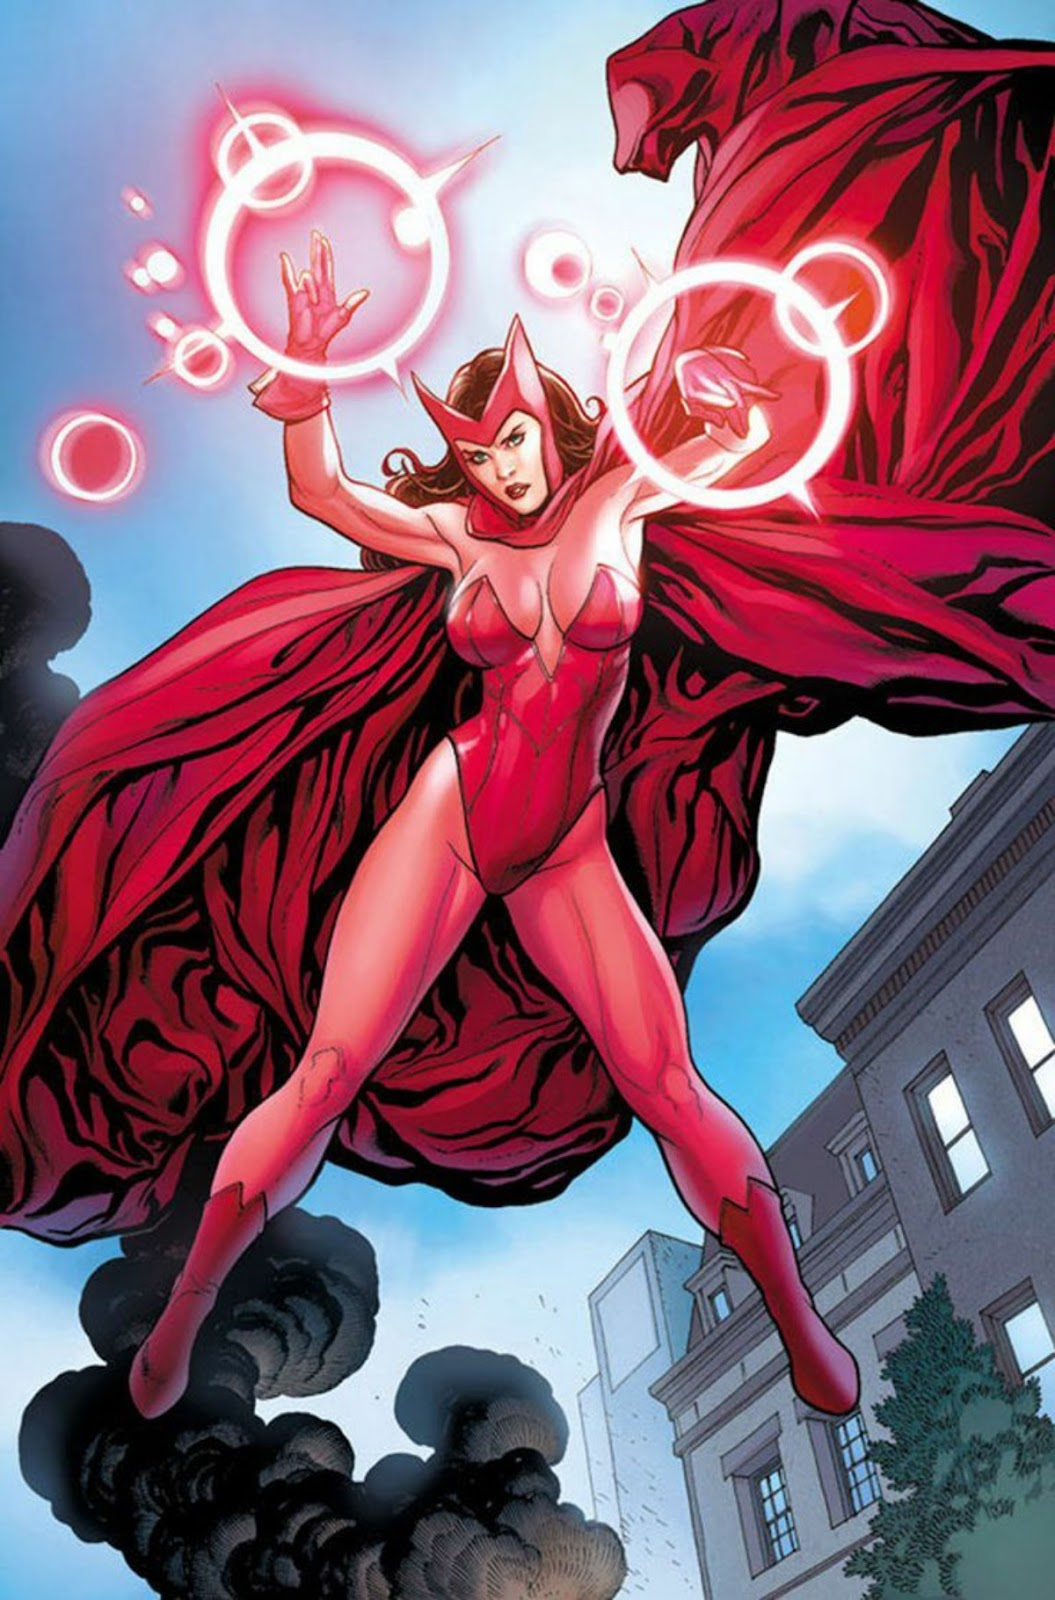 Scarlet Witch in her costume